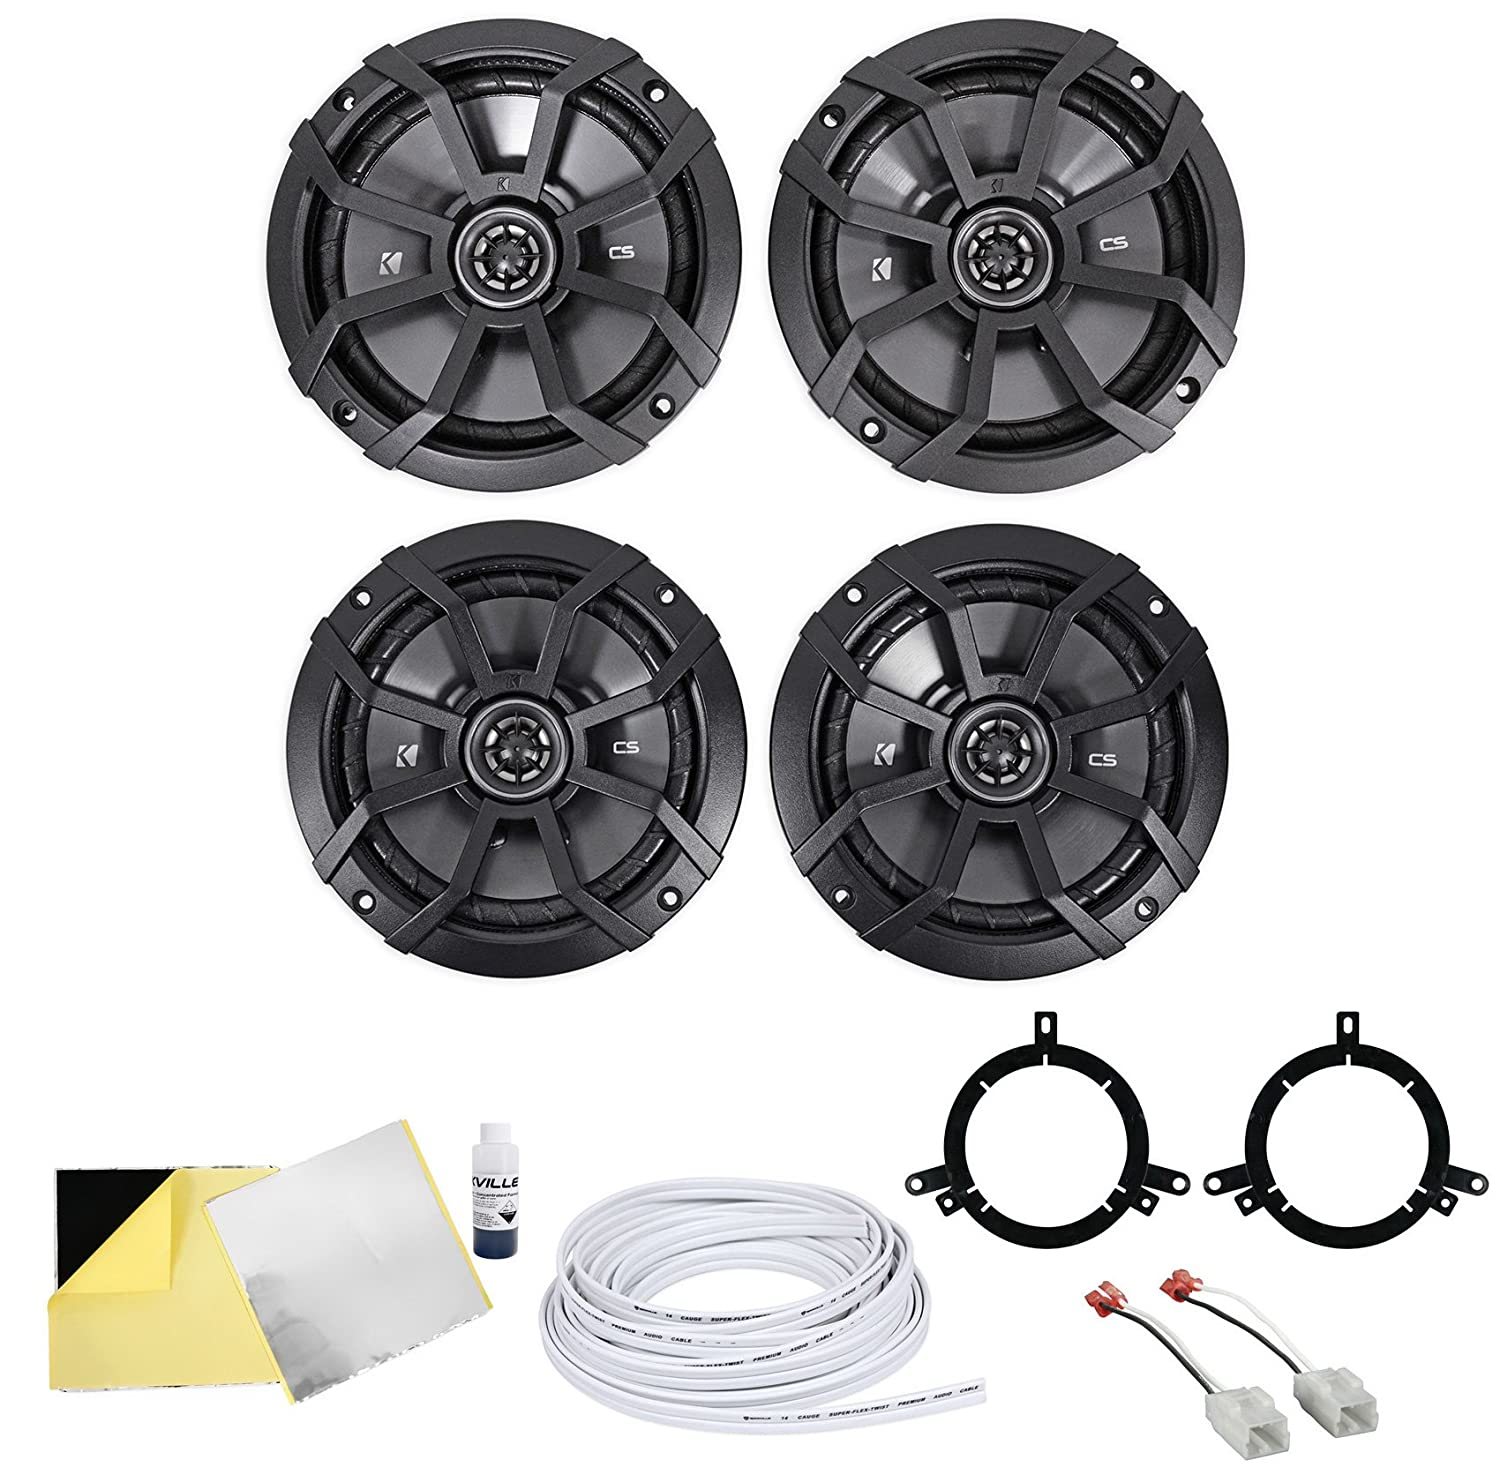 81f12ZZJZmL._SL1500_ amazon com jeep wrangler jk kicker speaker upgrade automotive  at soozxer.org